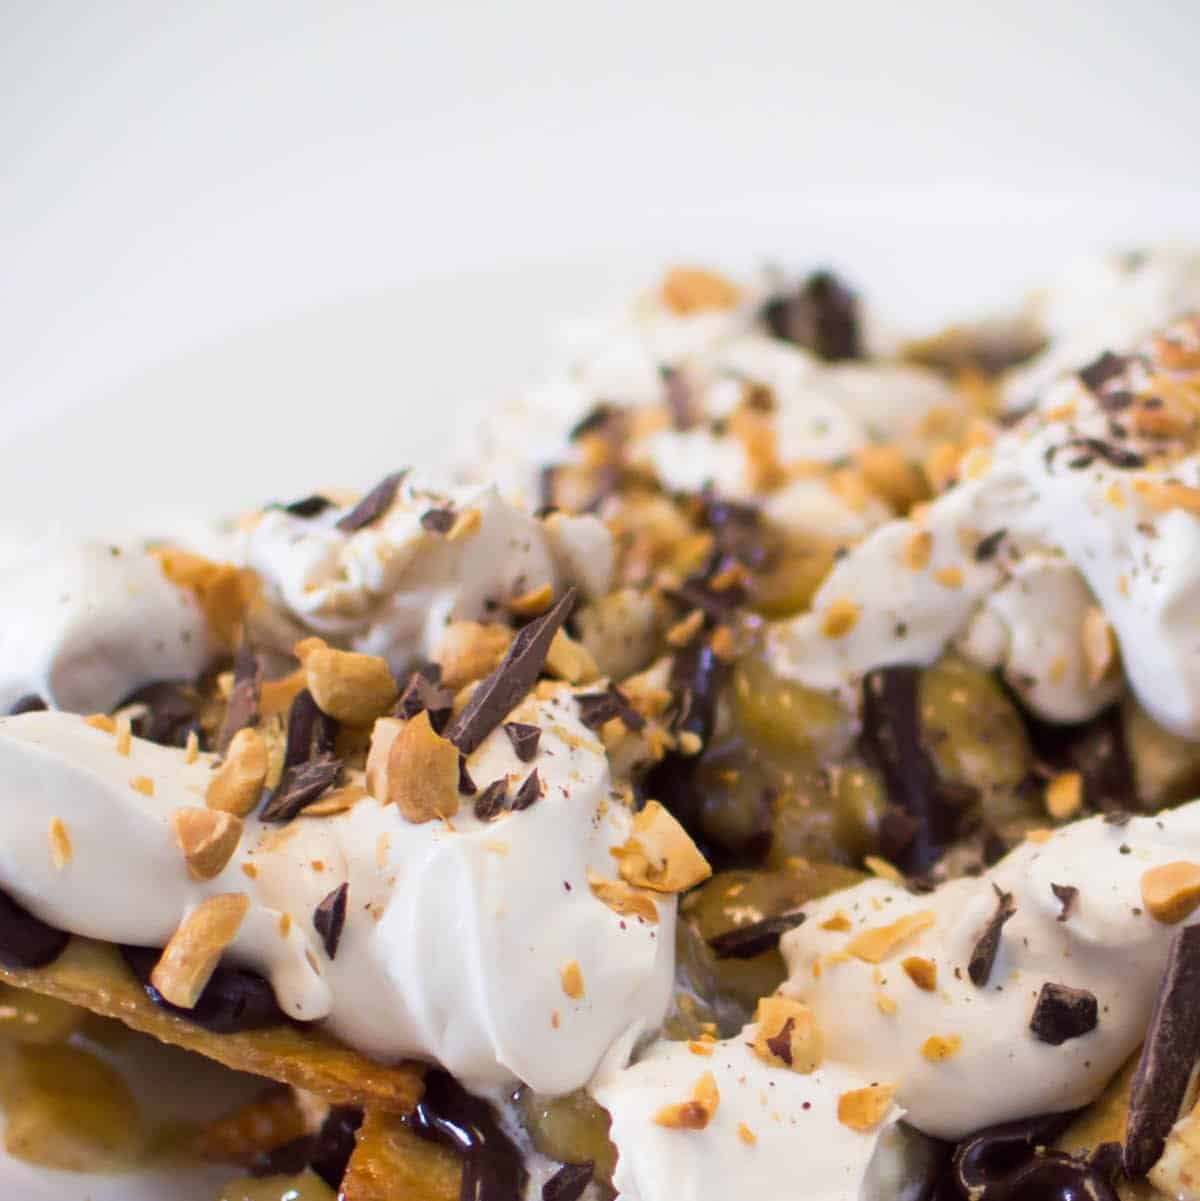 Ultimate Gooey Chocolate Banana Nachos